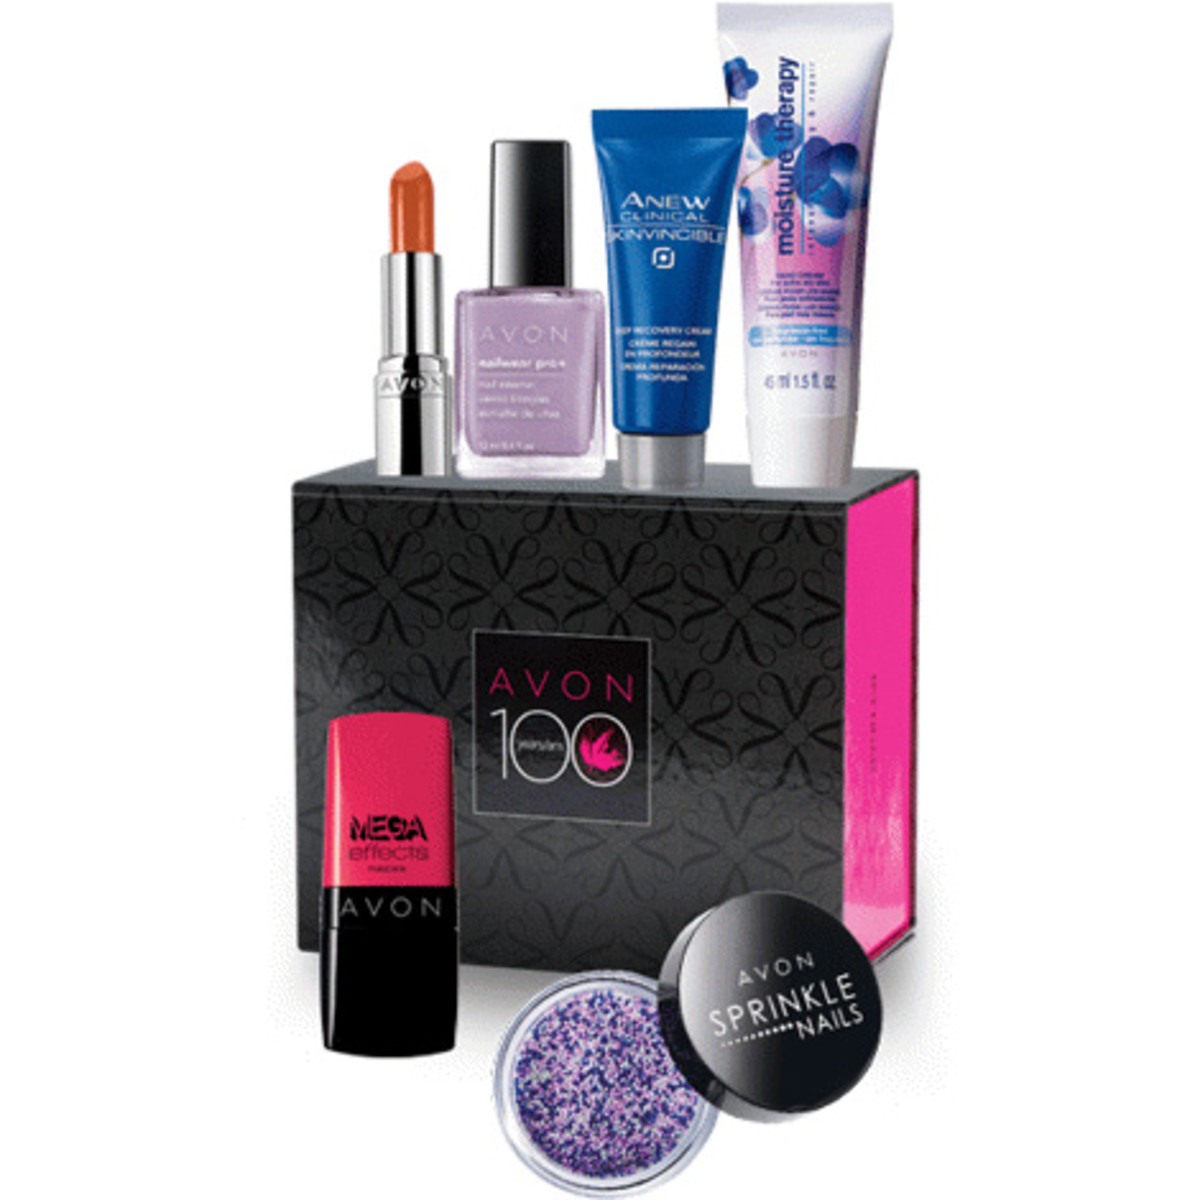 Avon Beauty Blogger Box